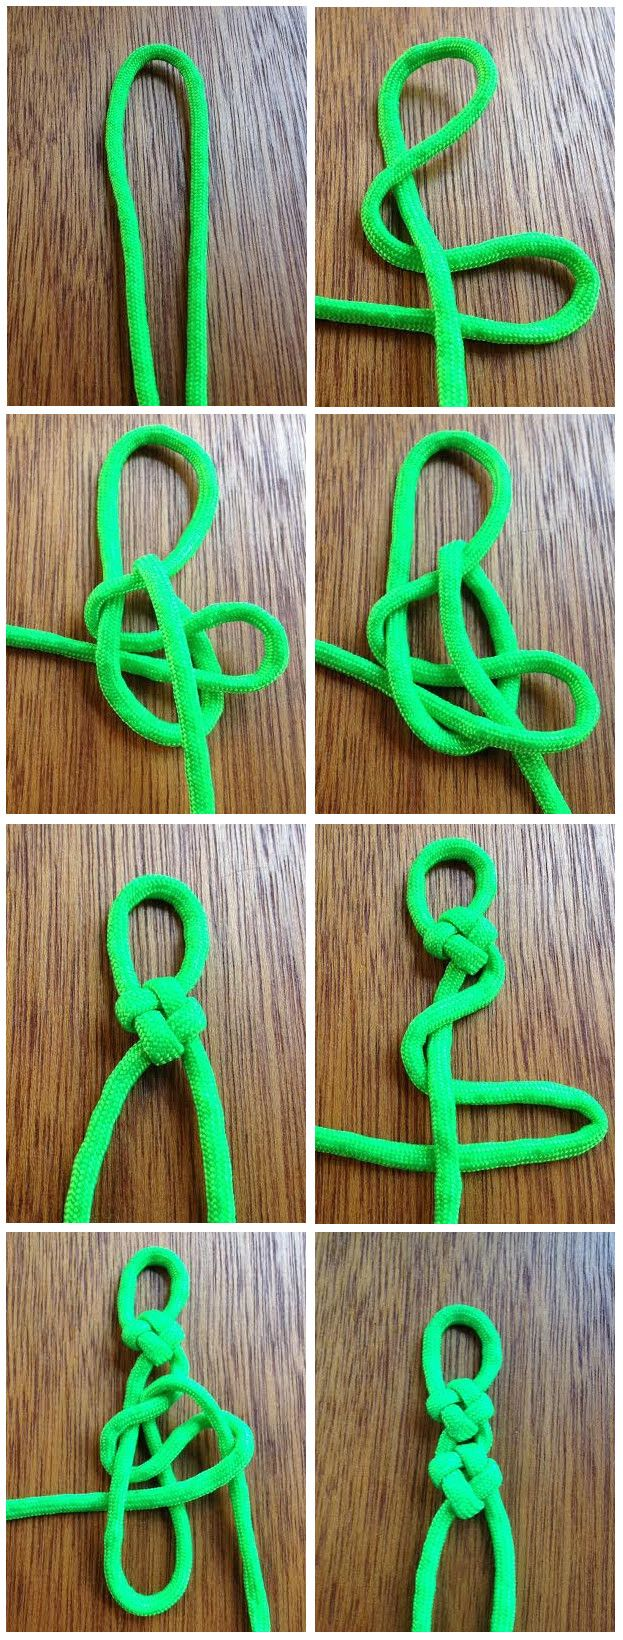 The Cross Knot Paracord Bracelet is a great looking - fairly easy to tie project. While, the knot is easy, getting the knot position can take some patients.